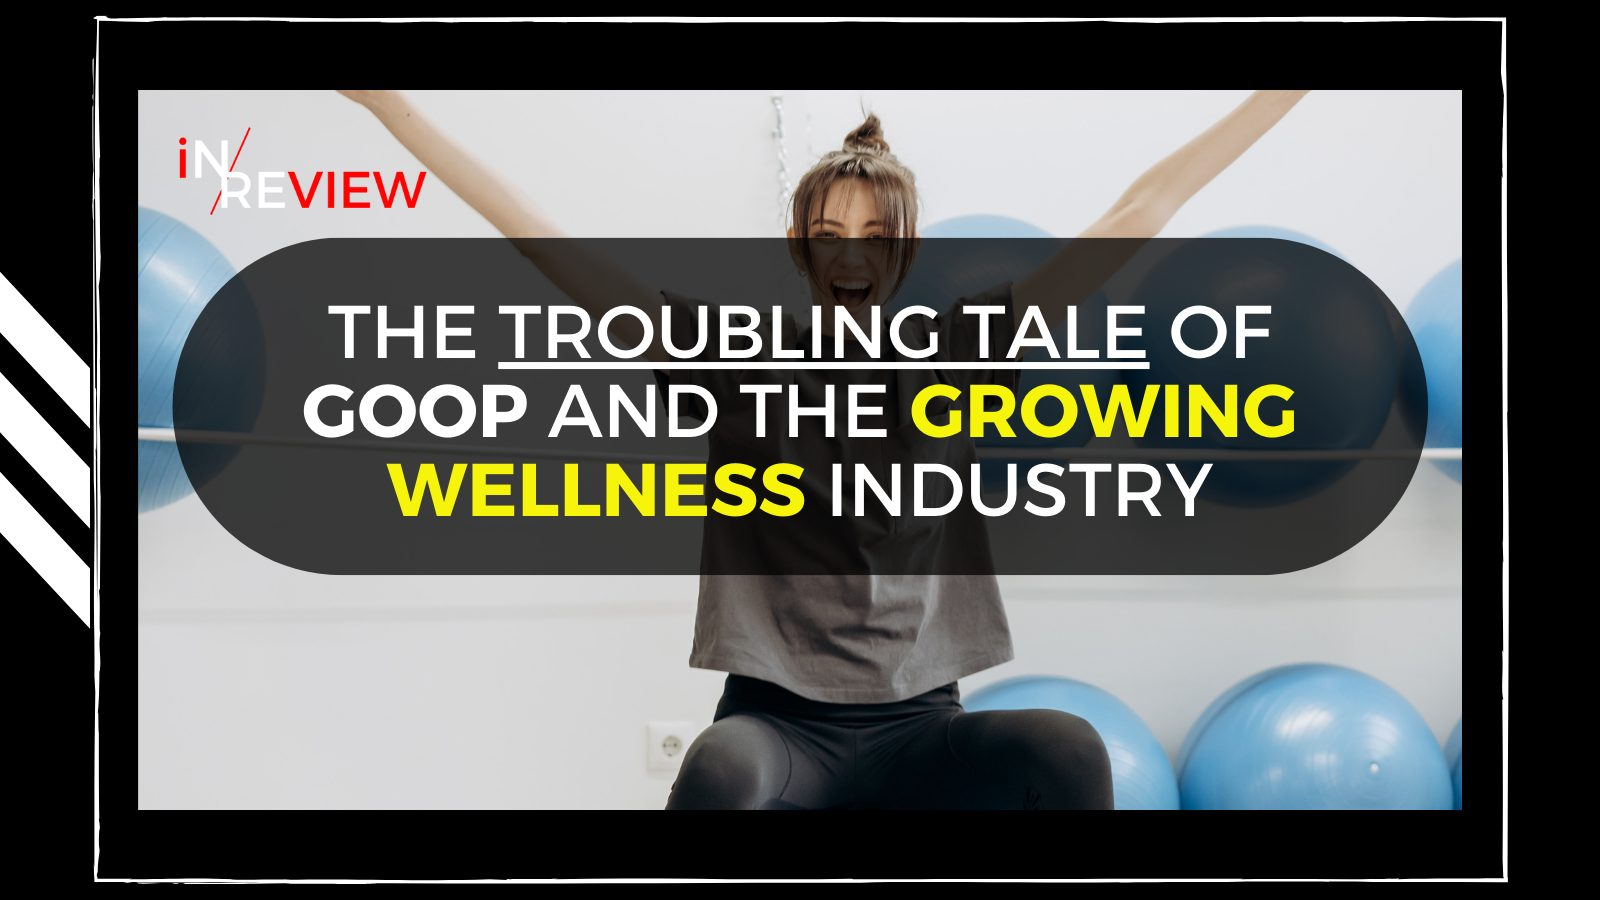 The troubling tale of Goop and the growing wellness industry